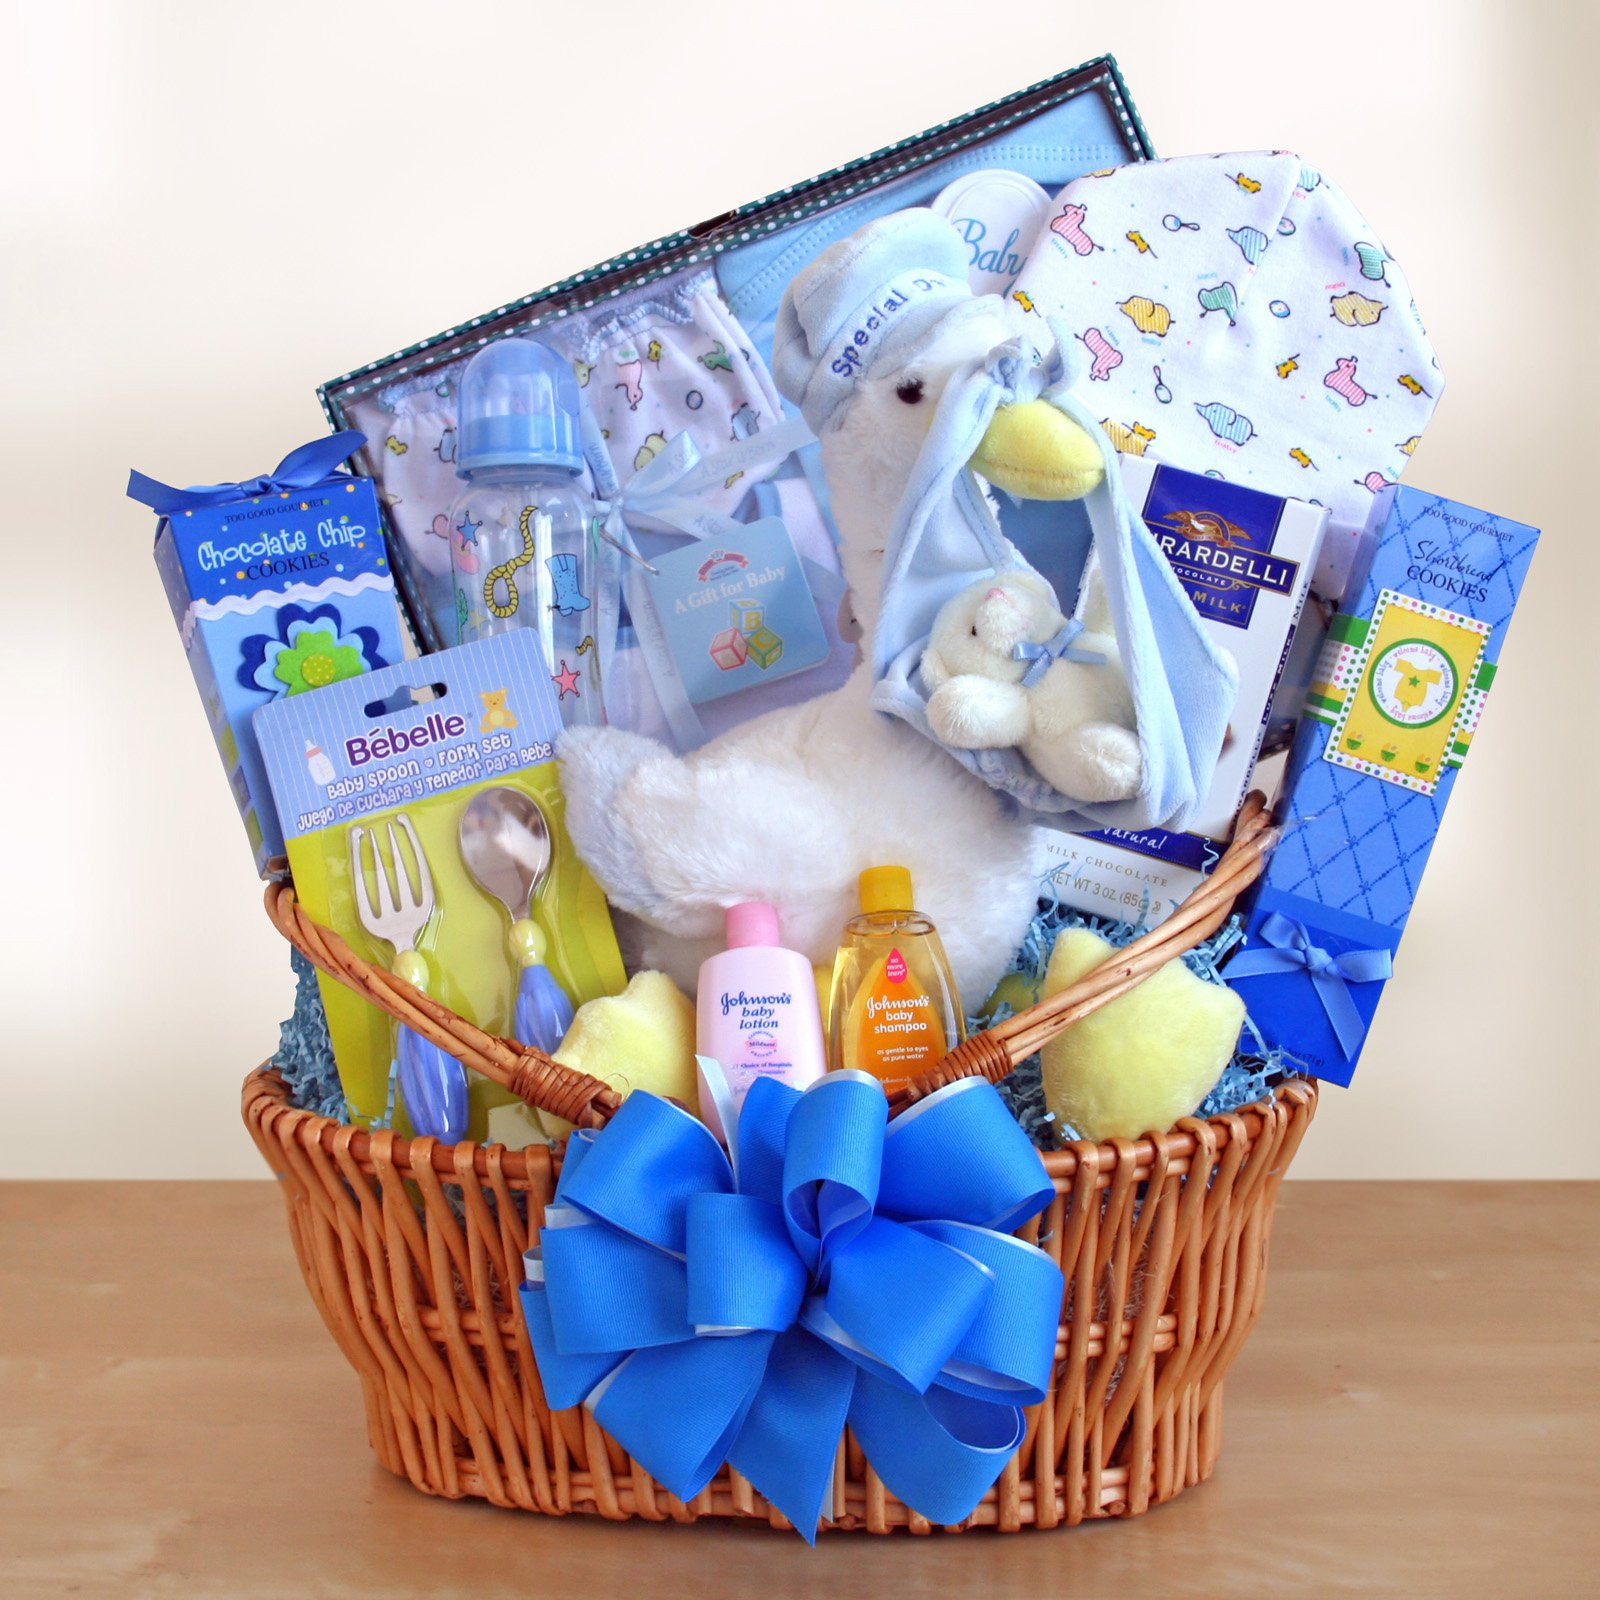 Best ideas about Newborn Baby Gift Ideas . Save or Pin Special Stork Delivery Baby Boy Gift Basket Gift Baskets Now.